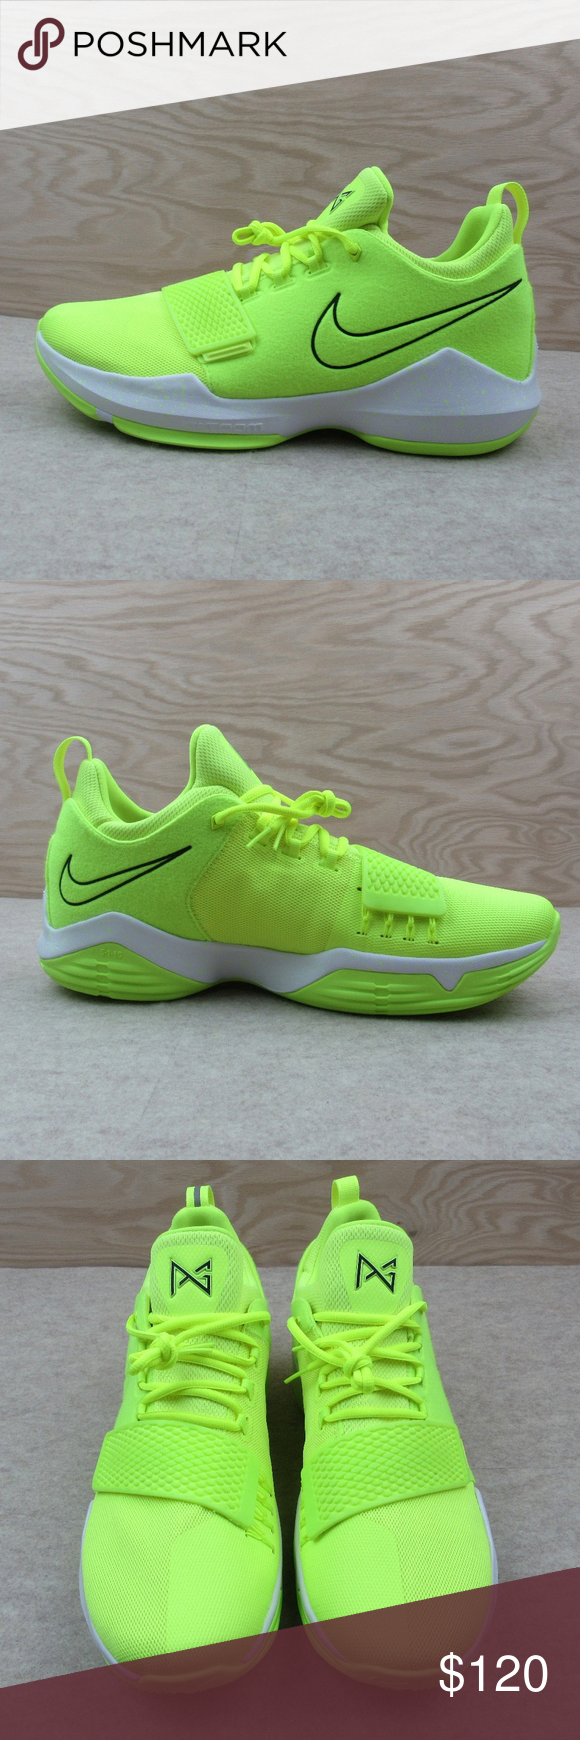 1db2542f7da Nike PG1 Size 14 Tennis Volt Basketball Shoes NEW Nike PG1 Tennis Ball Volt  Basketball Shoes Paul George Style - 878627-700 Men s Size 14 New without a  Box ...